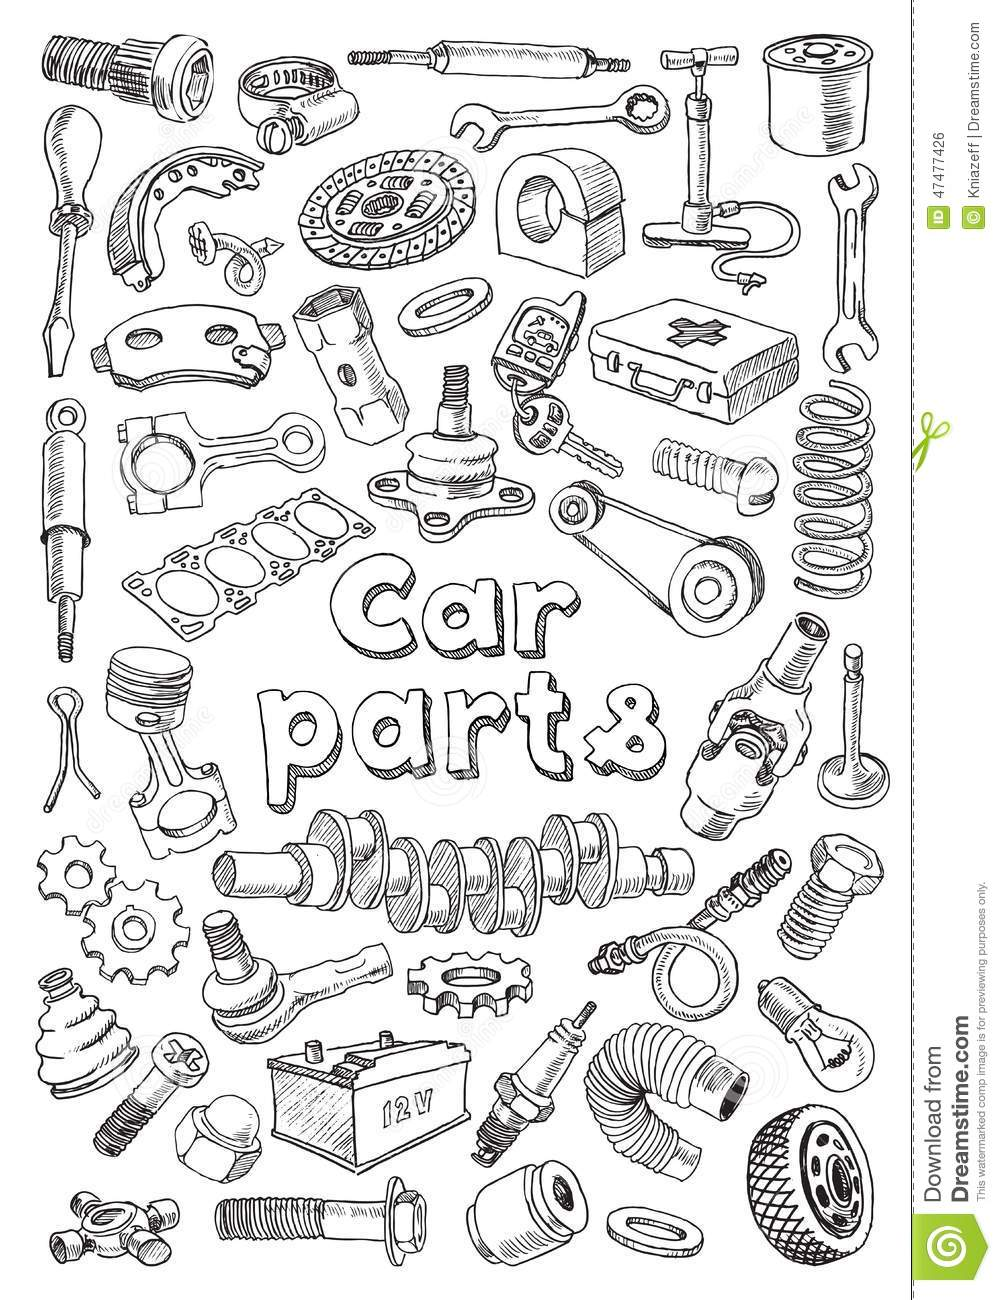 Outstanding Car 2d Drawings Frieze - Electrical Wiring Diagram Ideas ...